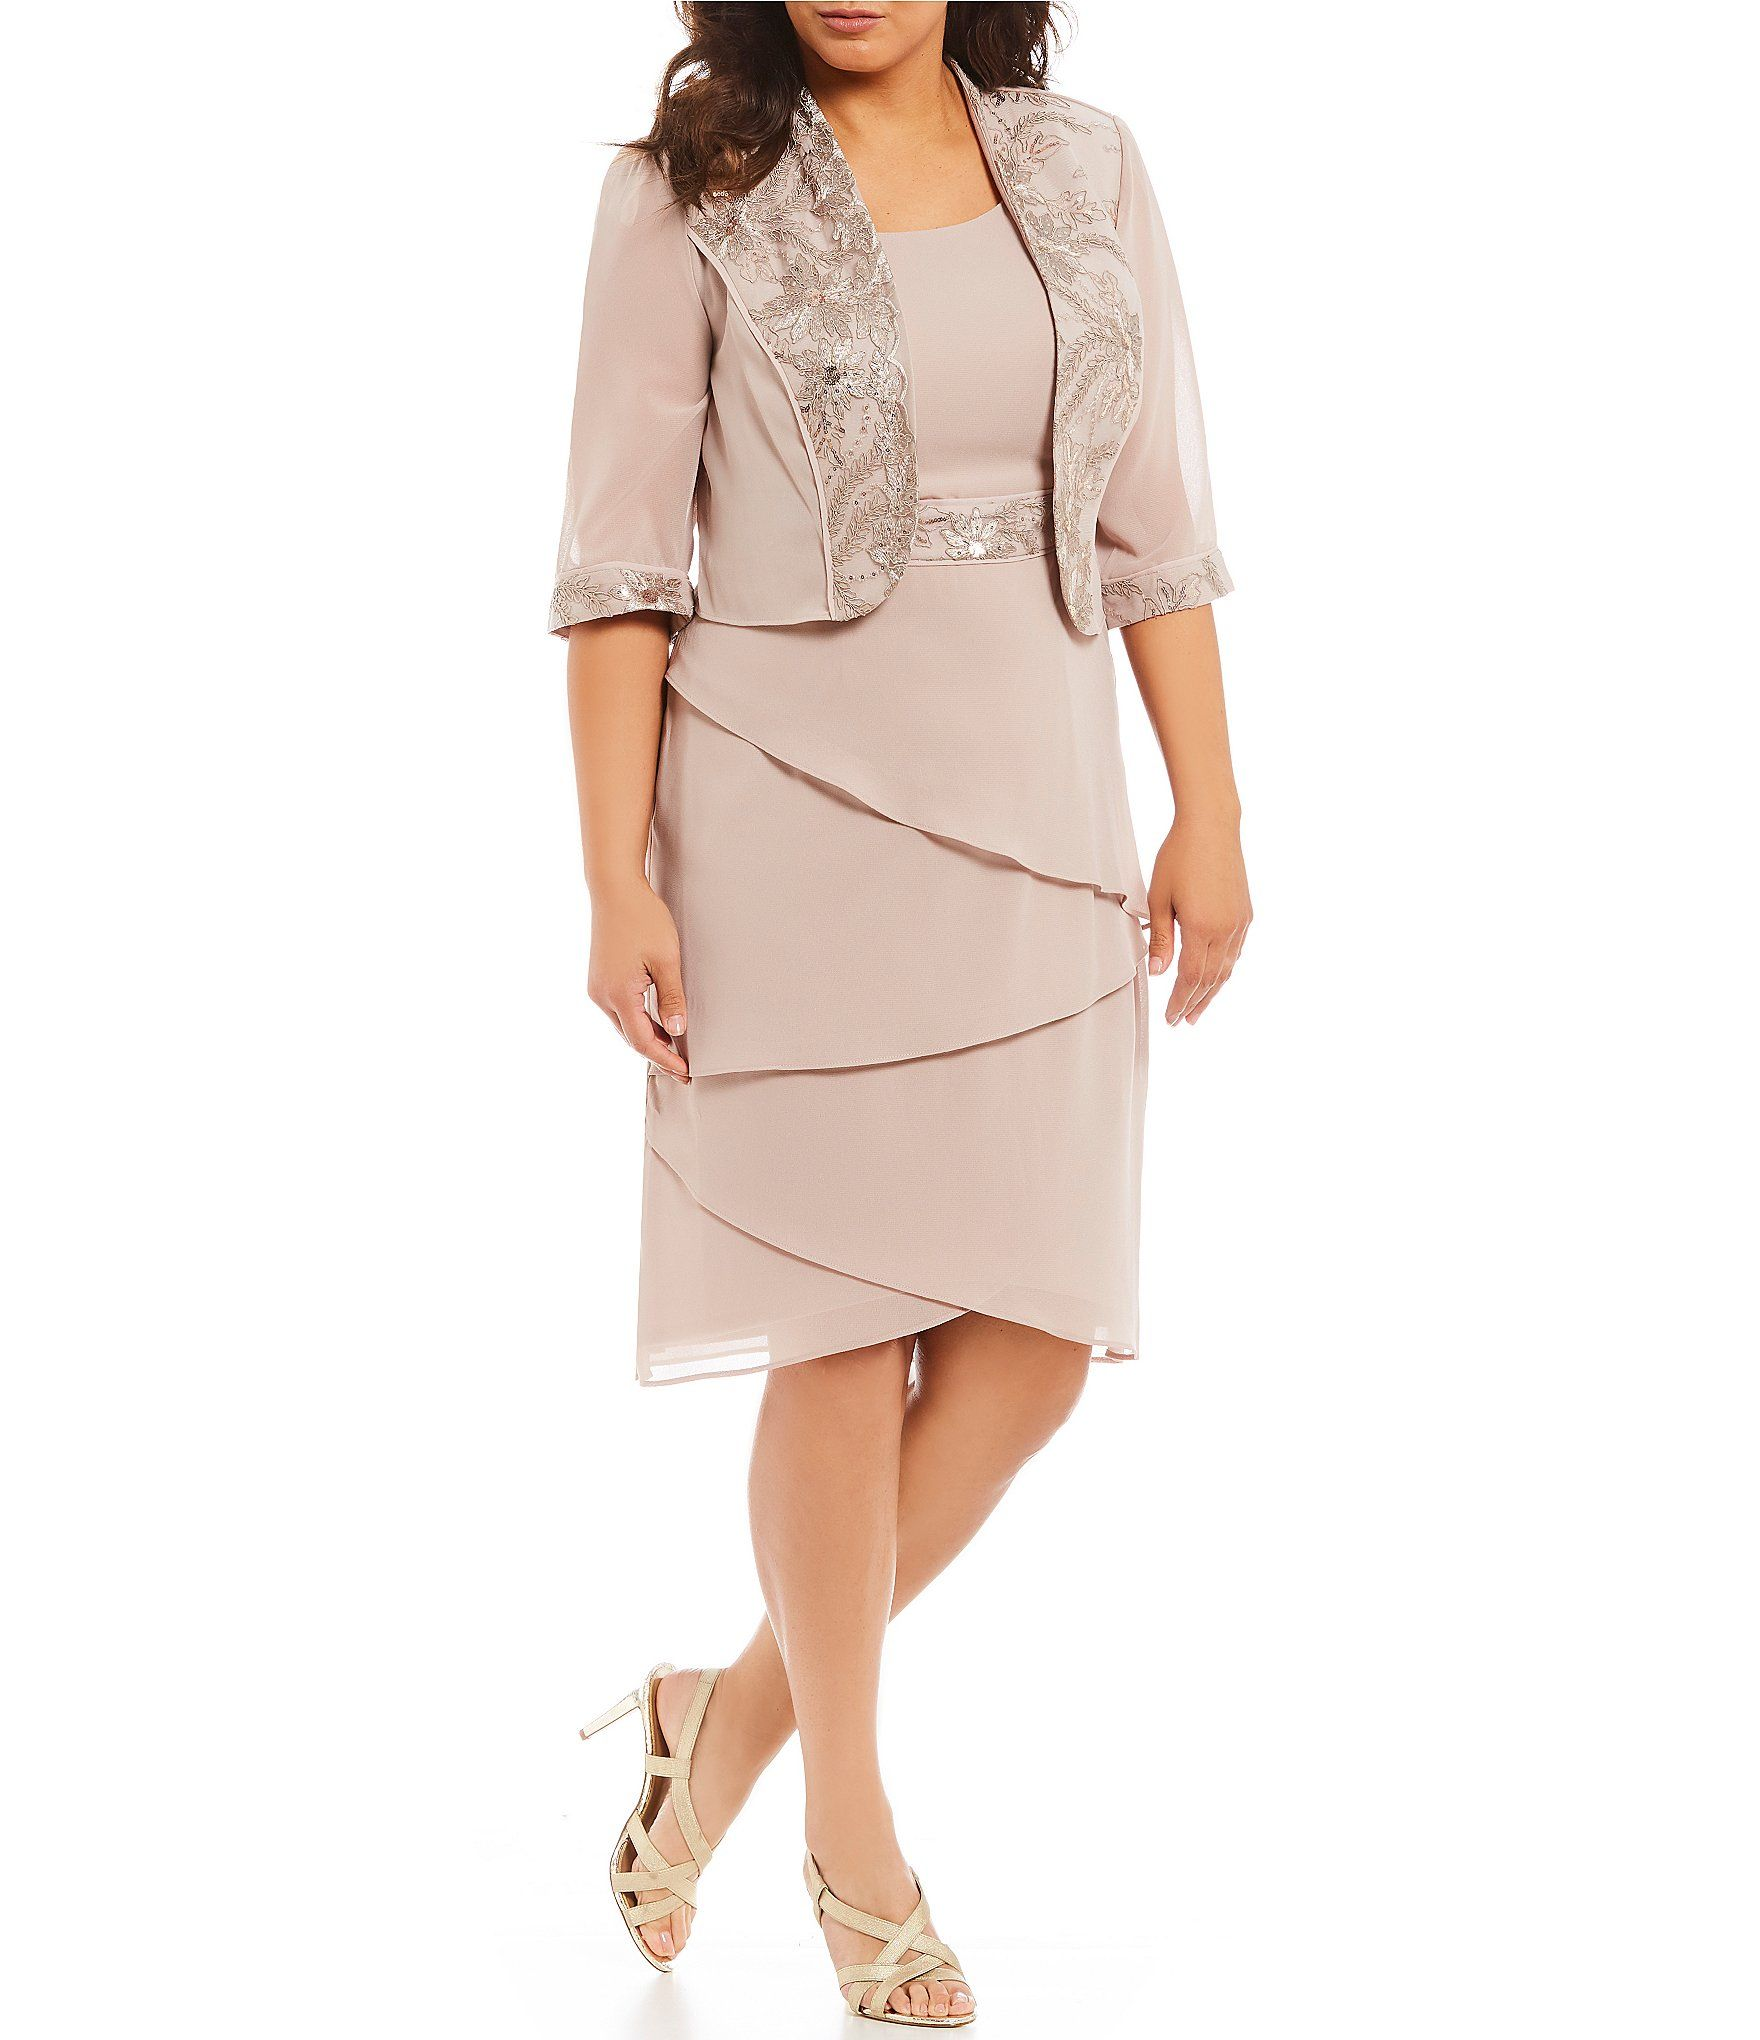 e0381cc8b6 Shop for Le Bos Plus Size 2-Piece Embroidered Trim Tiered Jacket Dress at  Dillards.com. Visit Dillards.com to find clothing